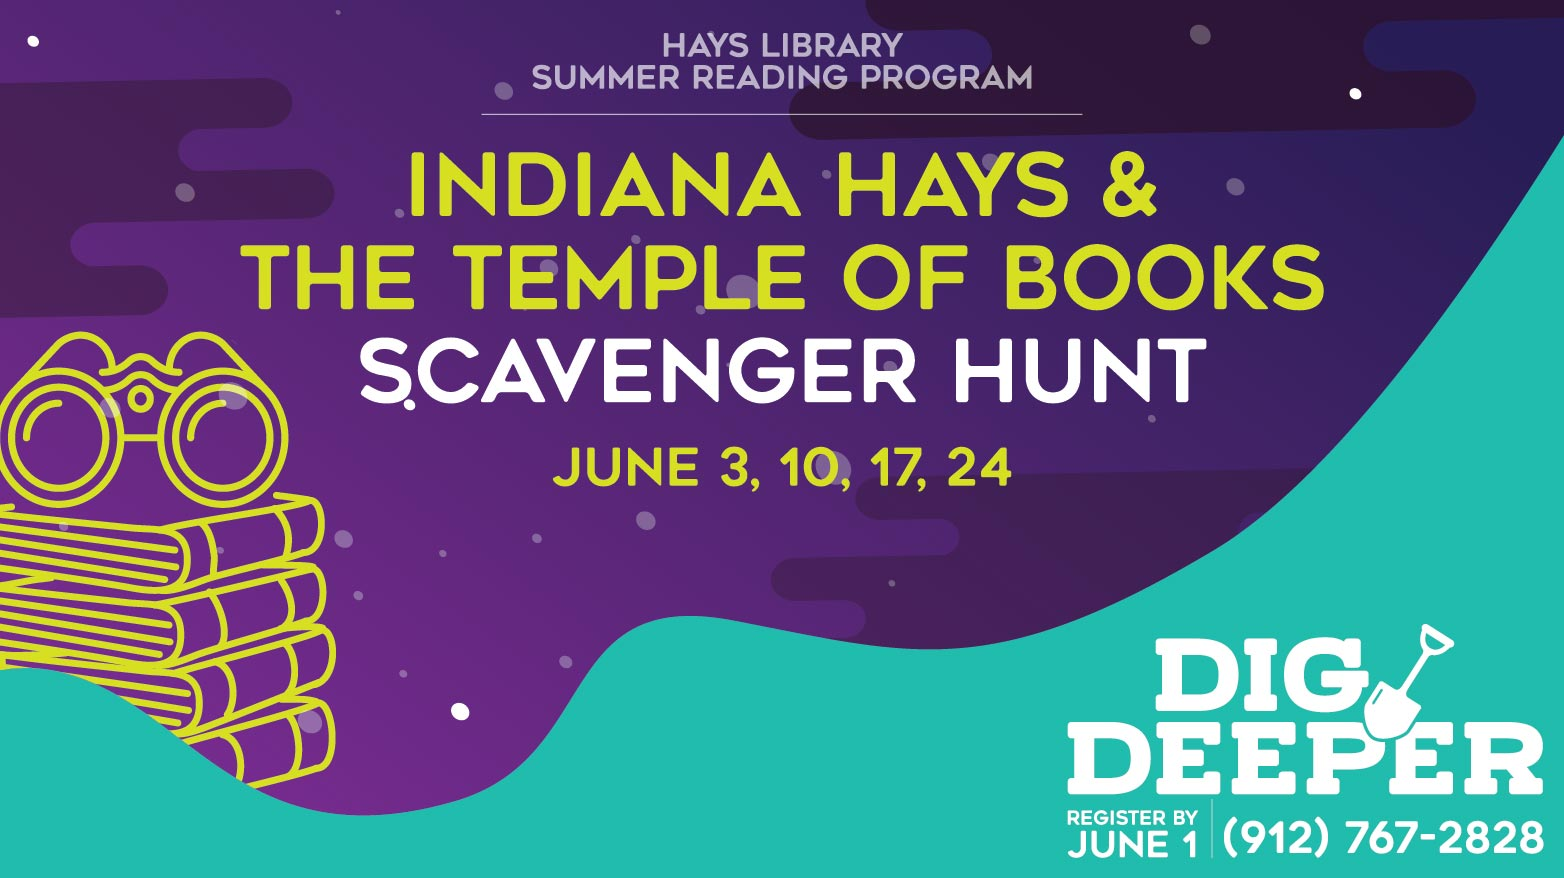 Indiana Hays & the Temple of Books Scavenger Hunt